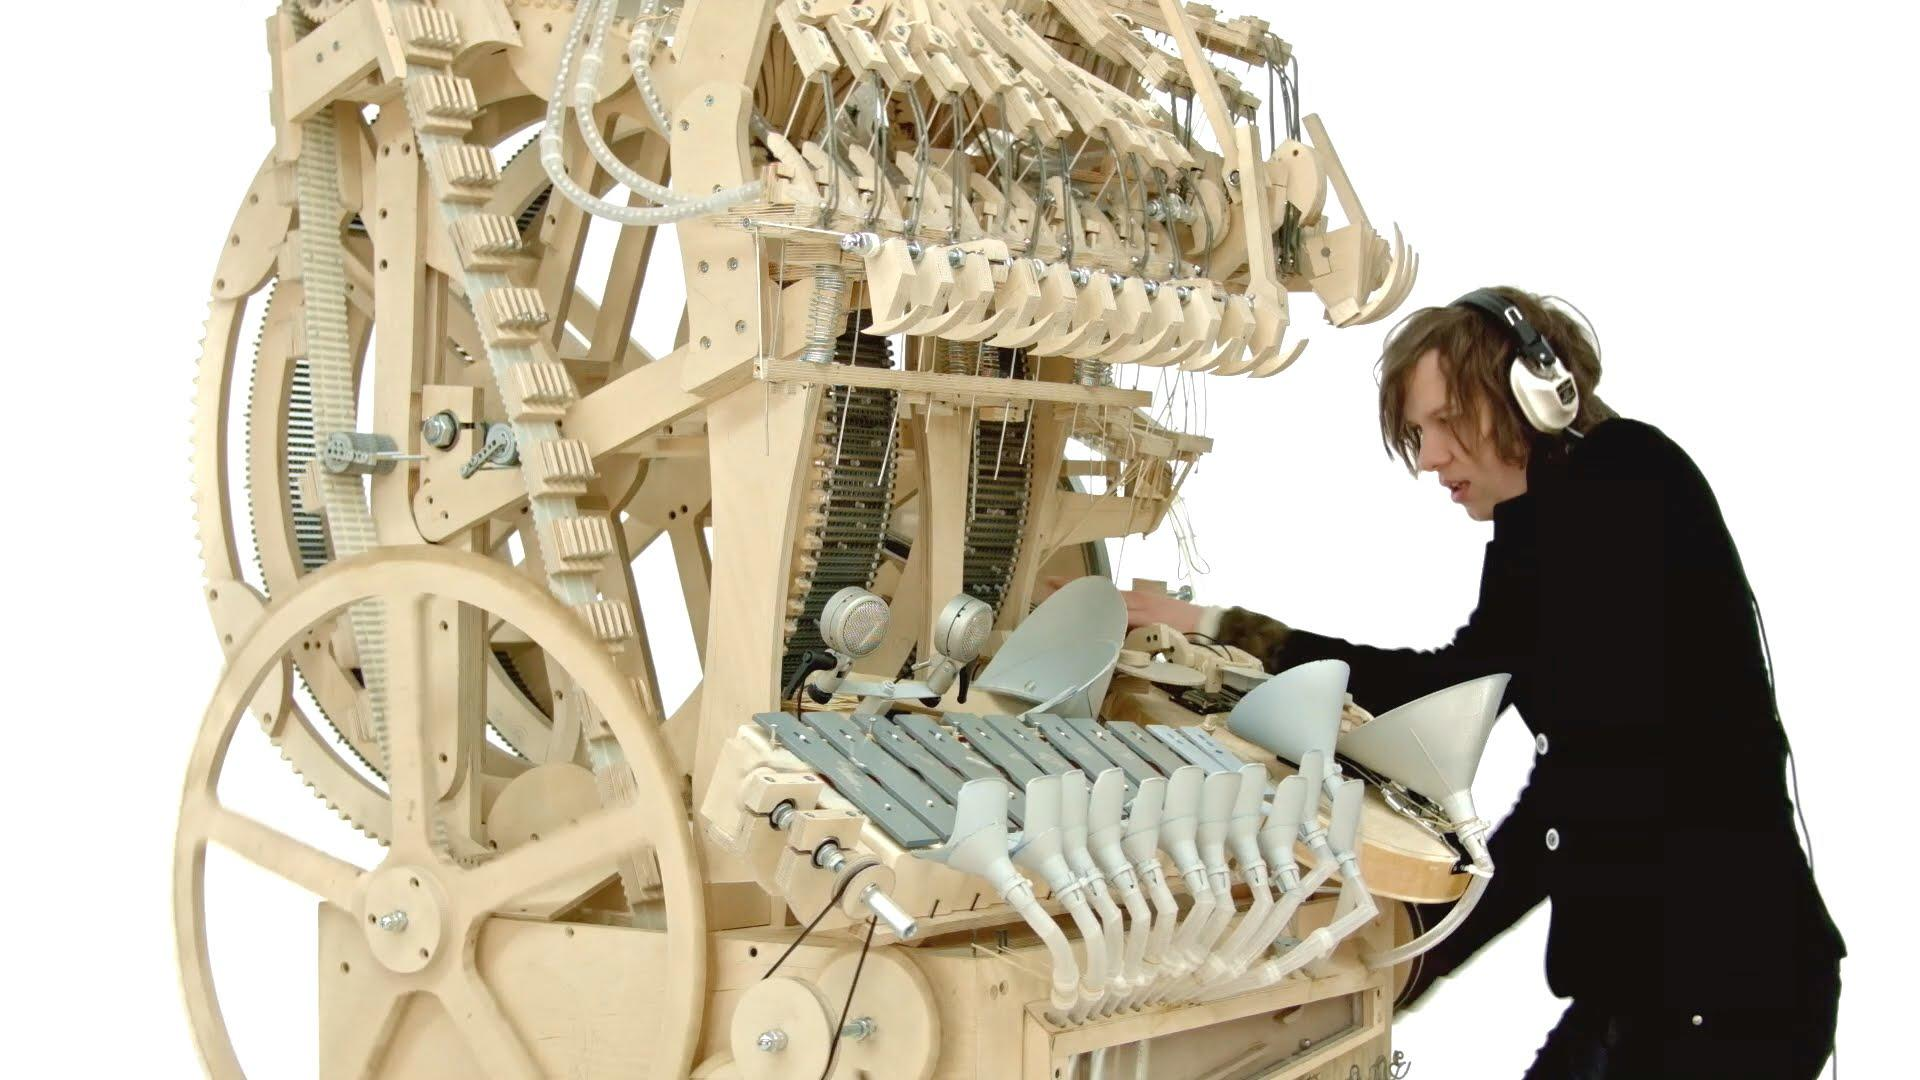 This Marble Machine Will Make You Lose Yours